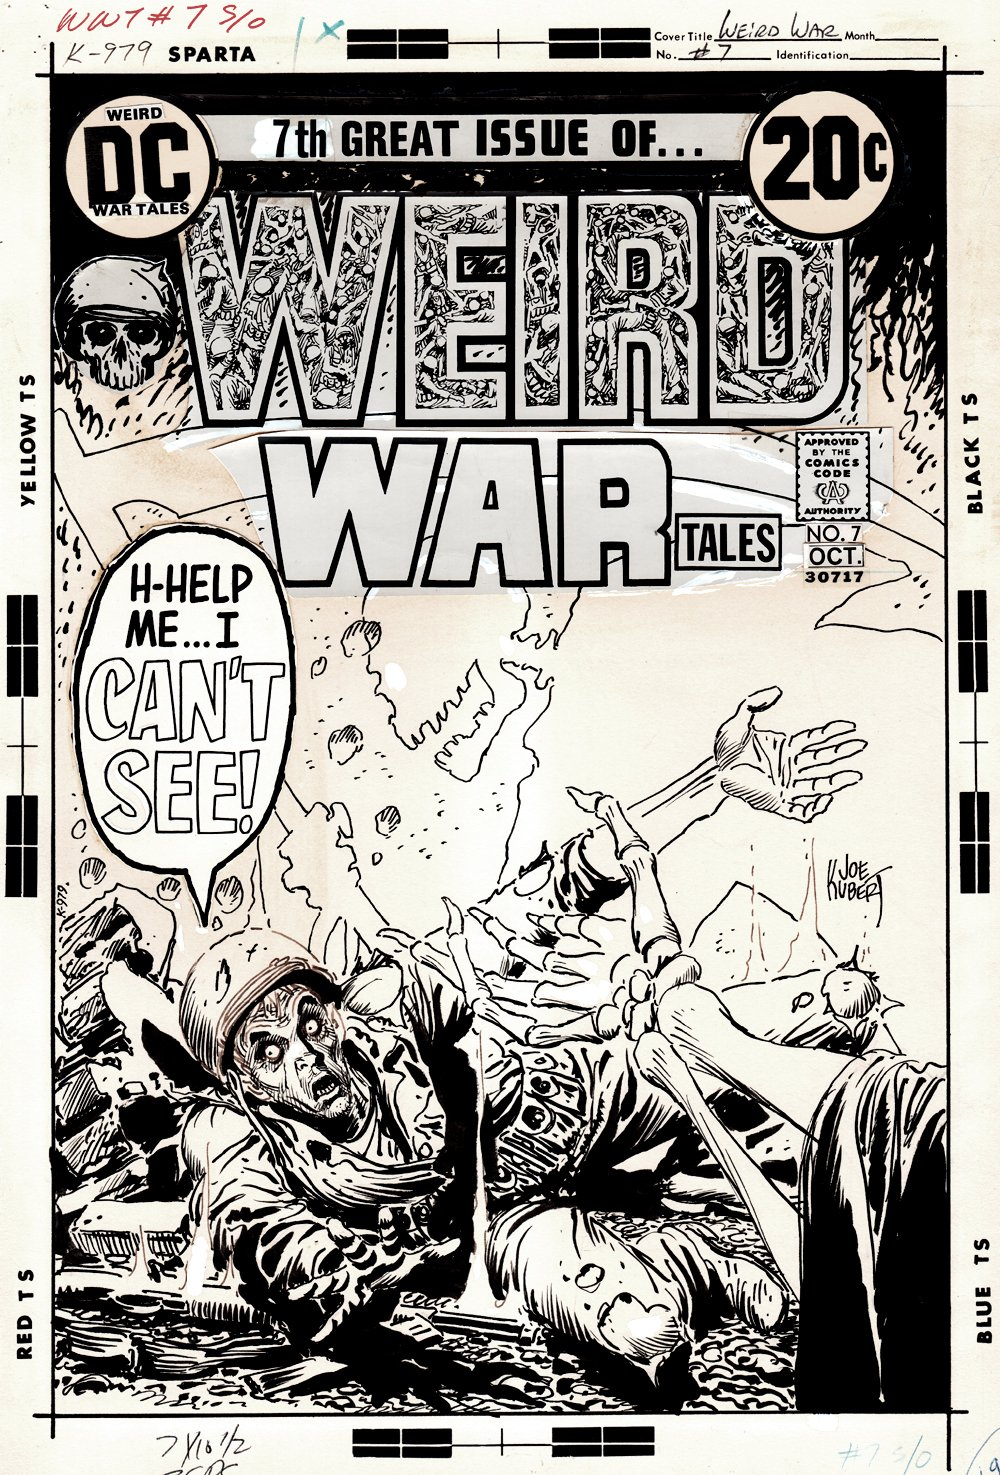 Weird War Tales #7 Cover (Blind Soldier Confronts The Grim Reaper!) 1972